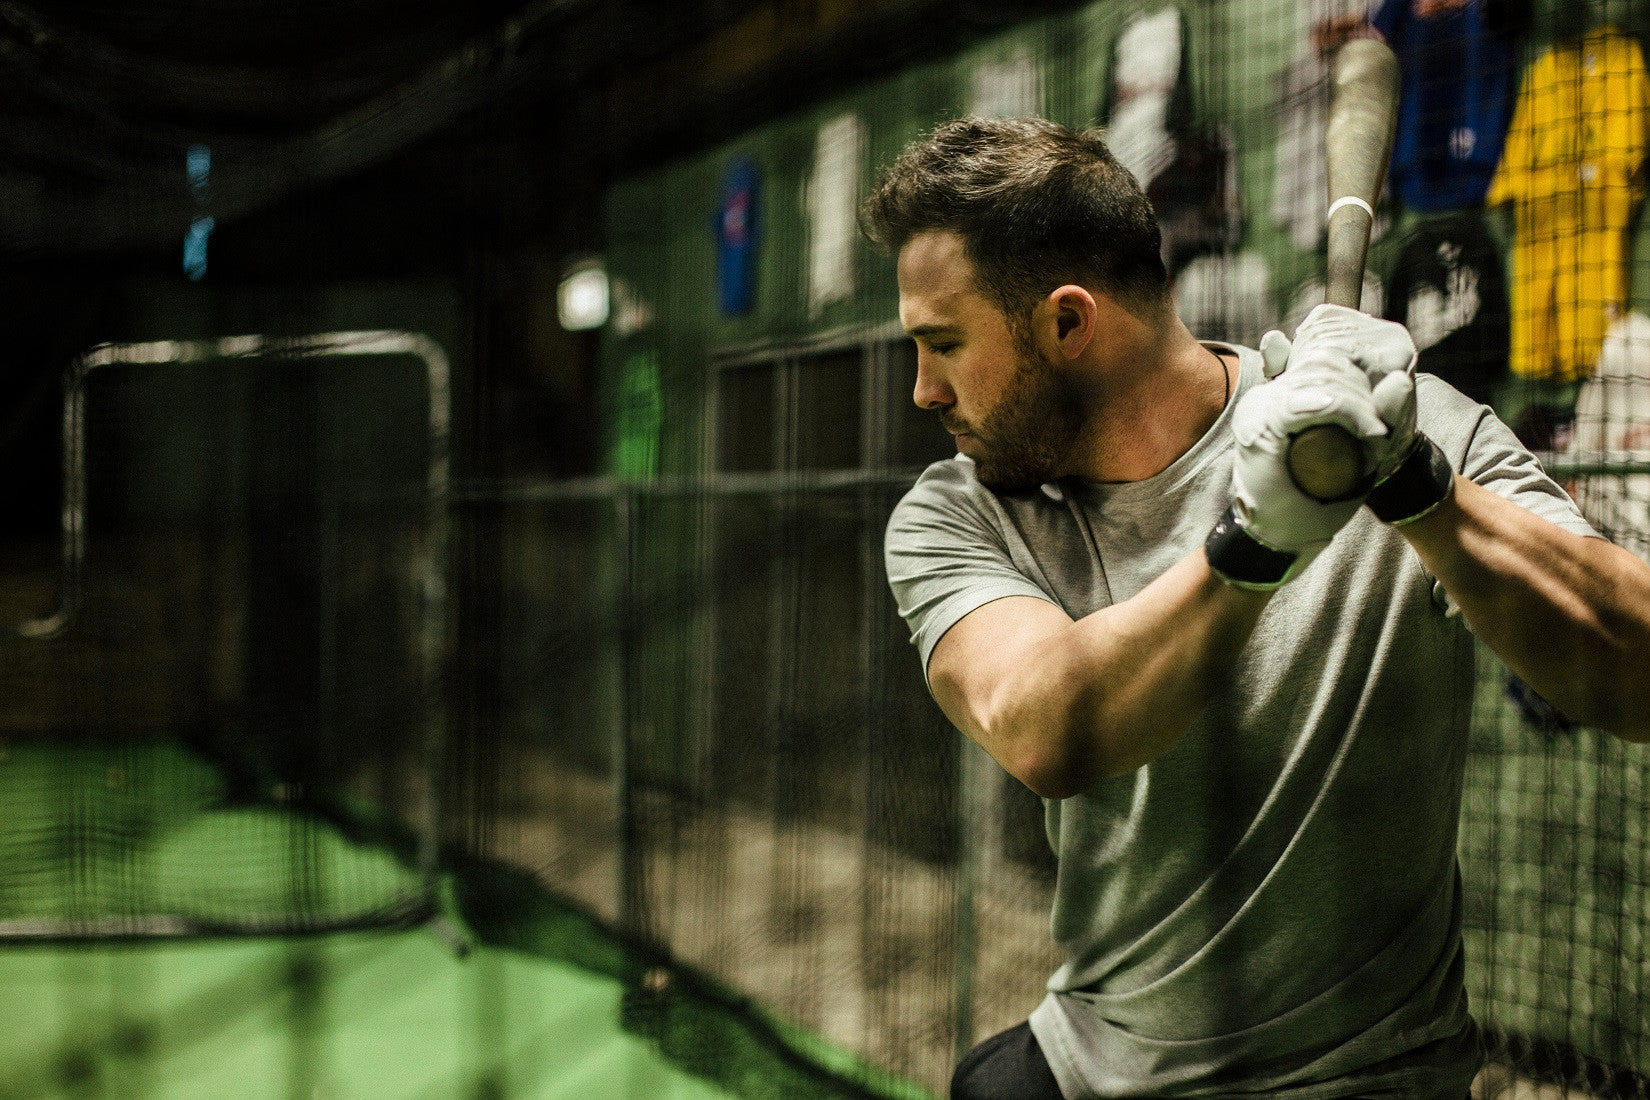 Jason Kipnis - The Man in the Arena - Photo 8